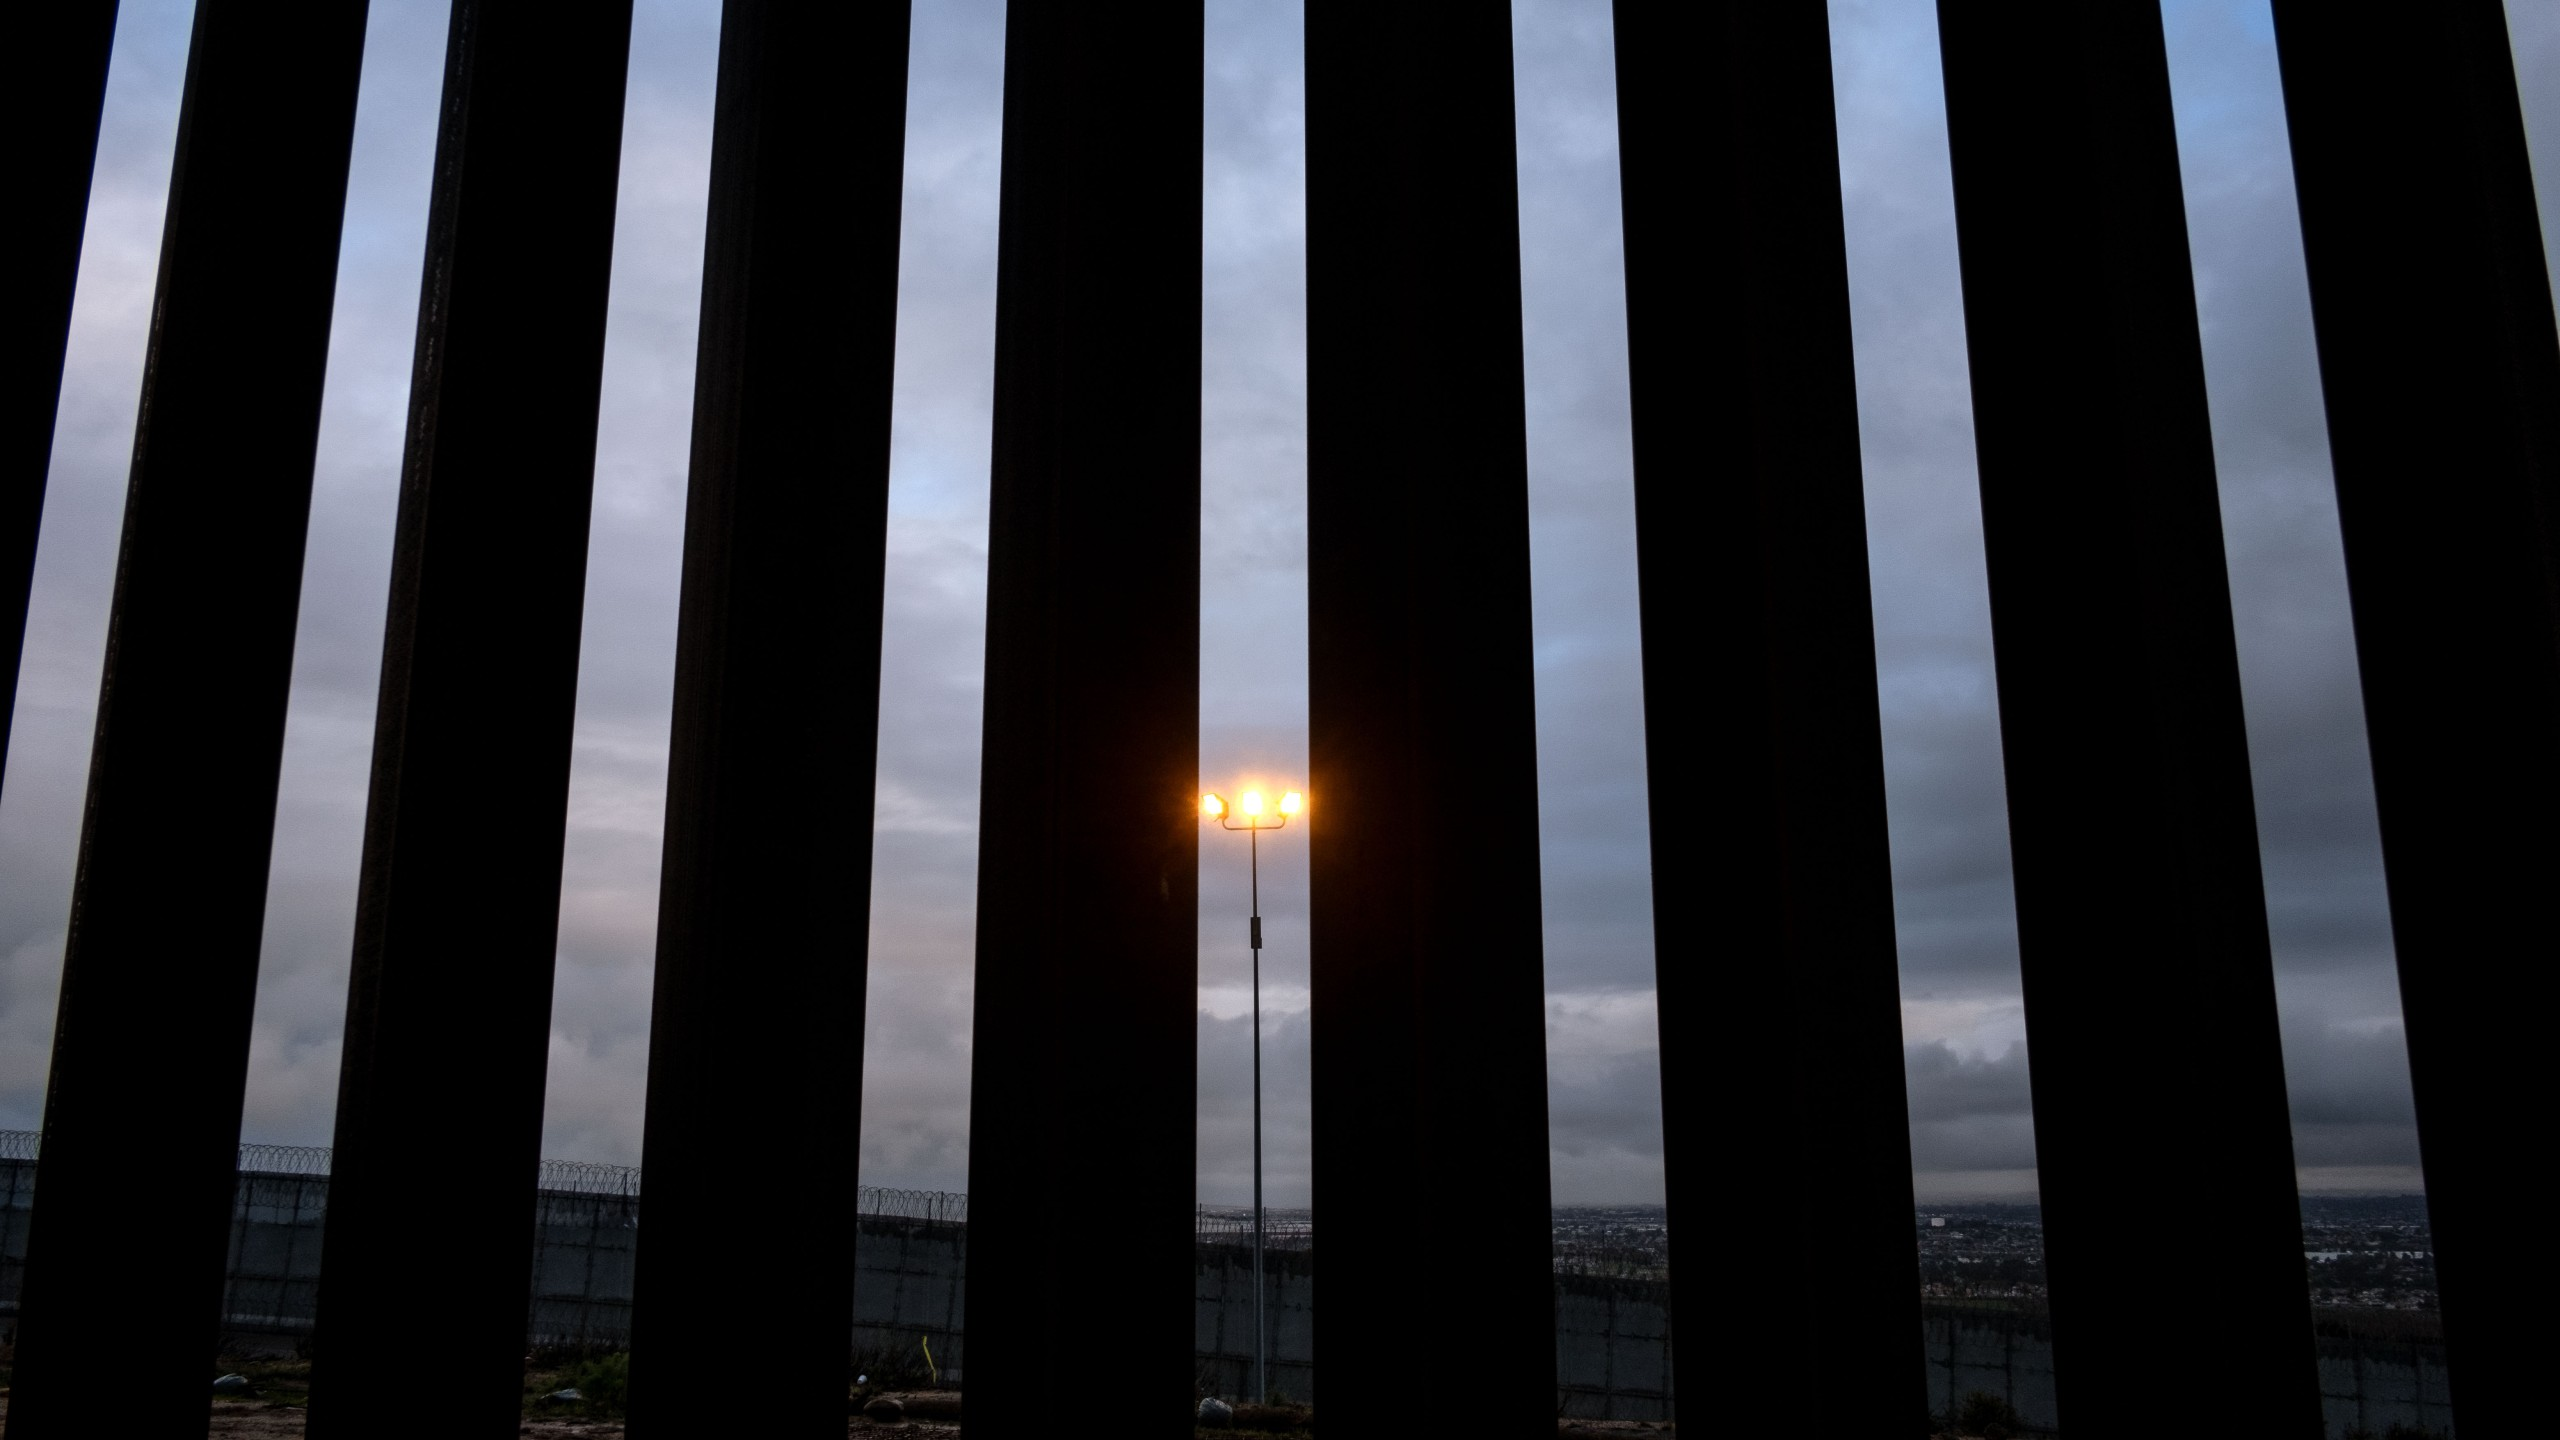 Picture of a section of the US-Mexico border fence seen from Tijuana, Baja California State, Mexico, on February 5, 2019. (Credit: GUILLERMO ARIAS/AFP/Getty Images)